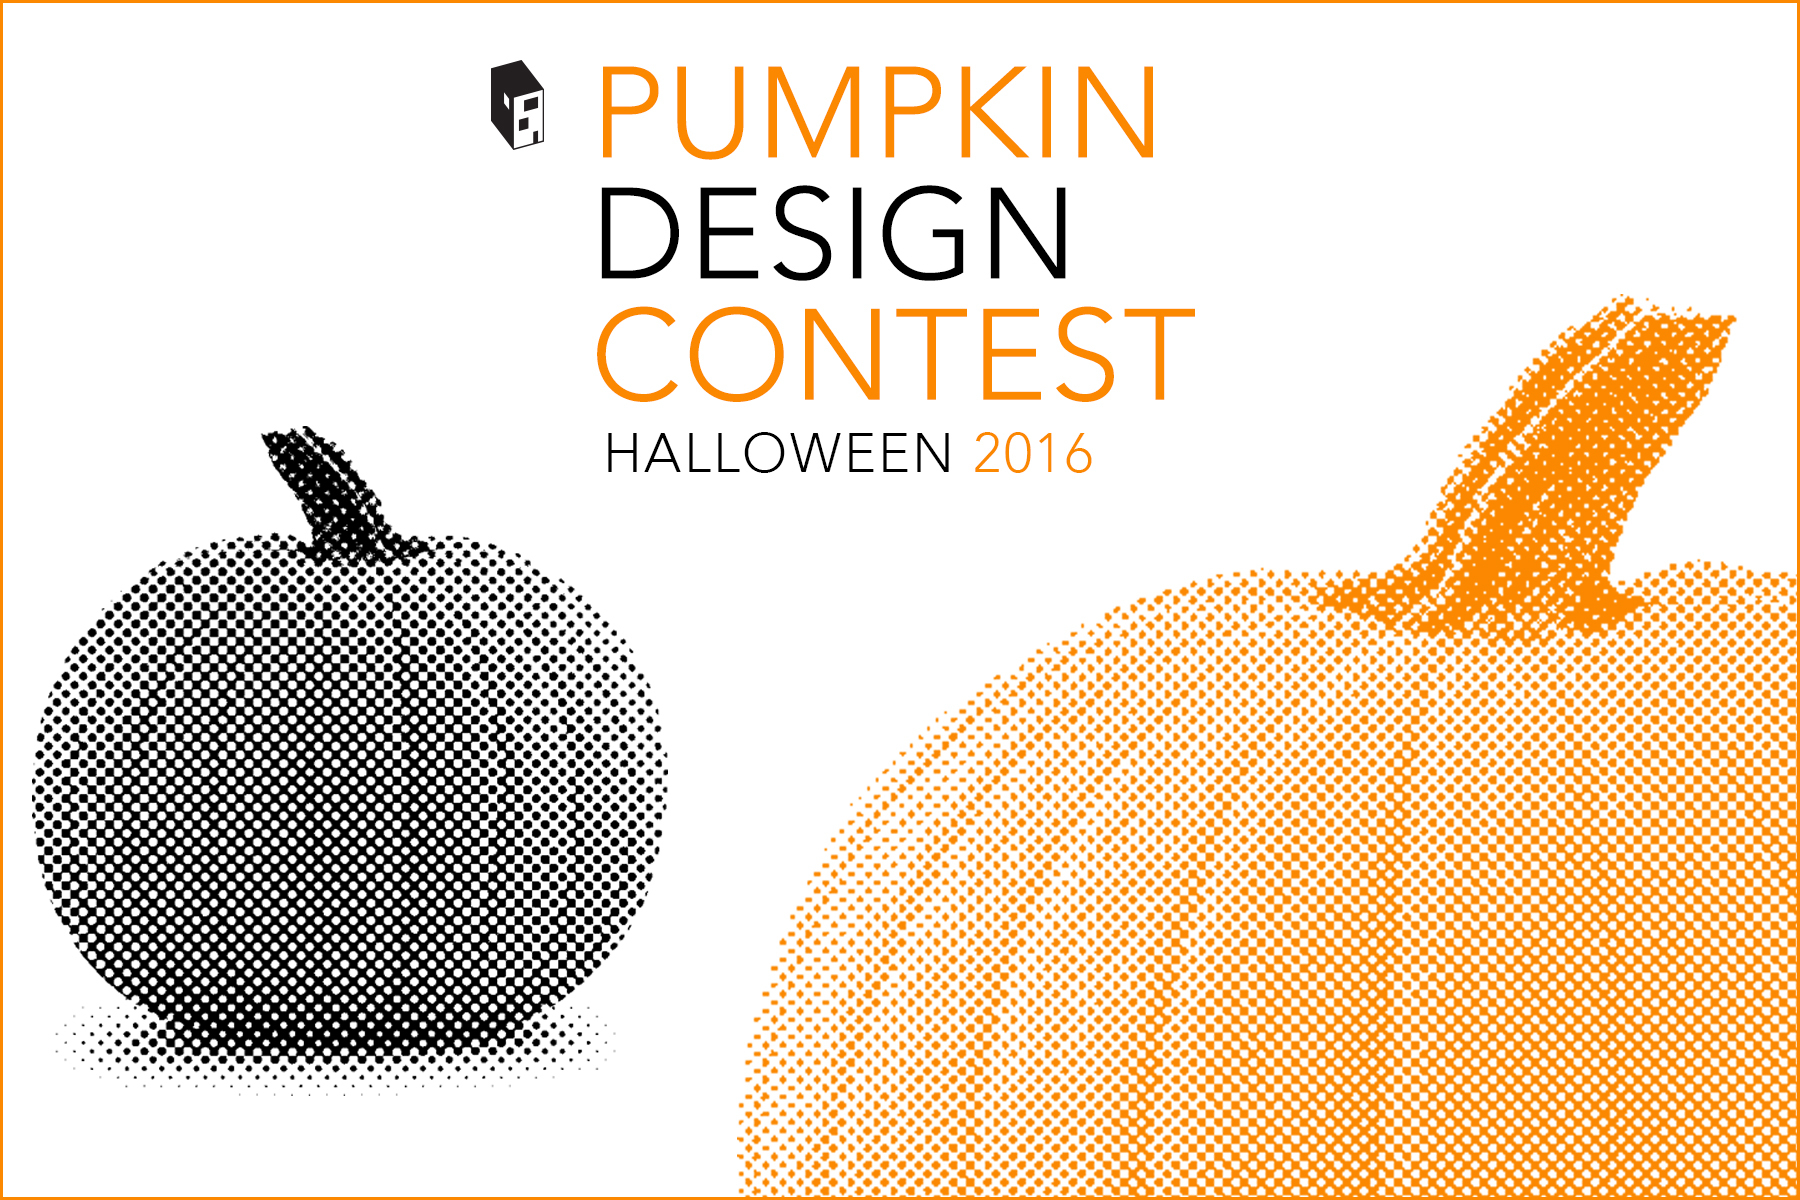 call for entries: architecture-themed pumpkin designs | archdaily